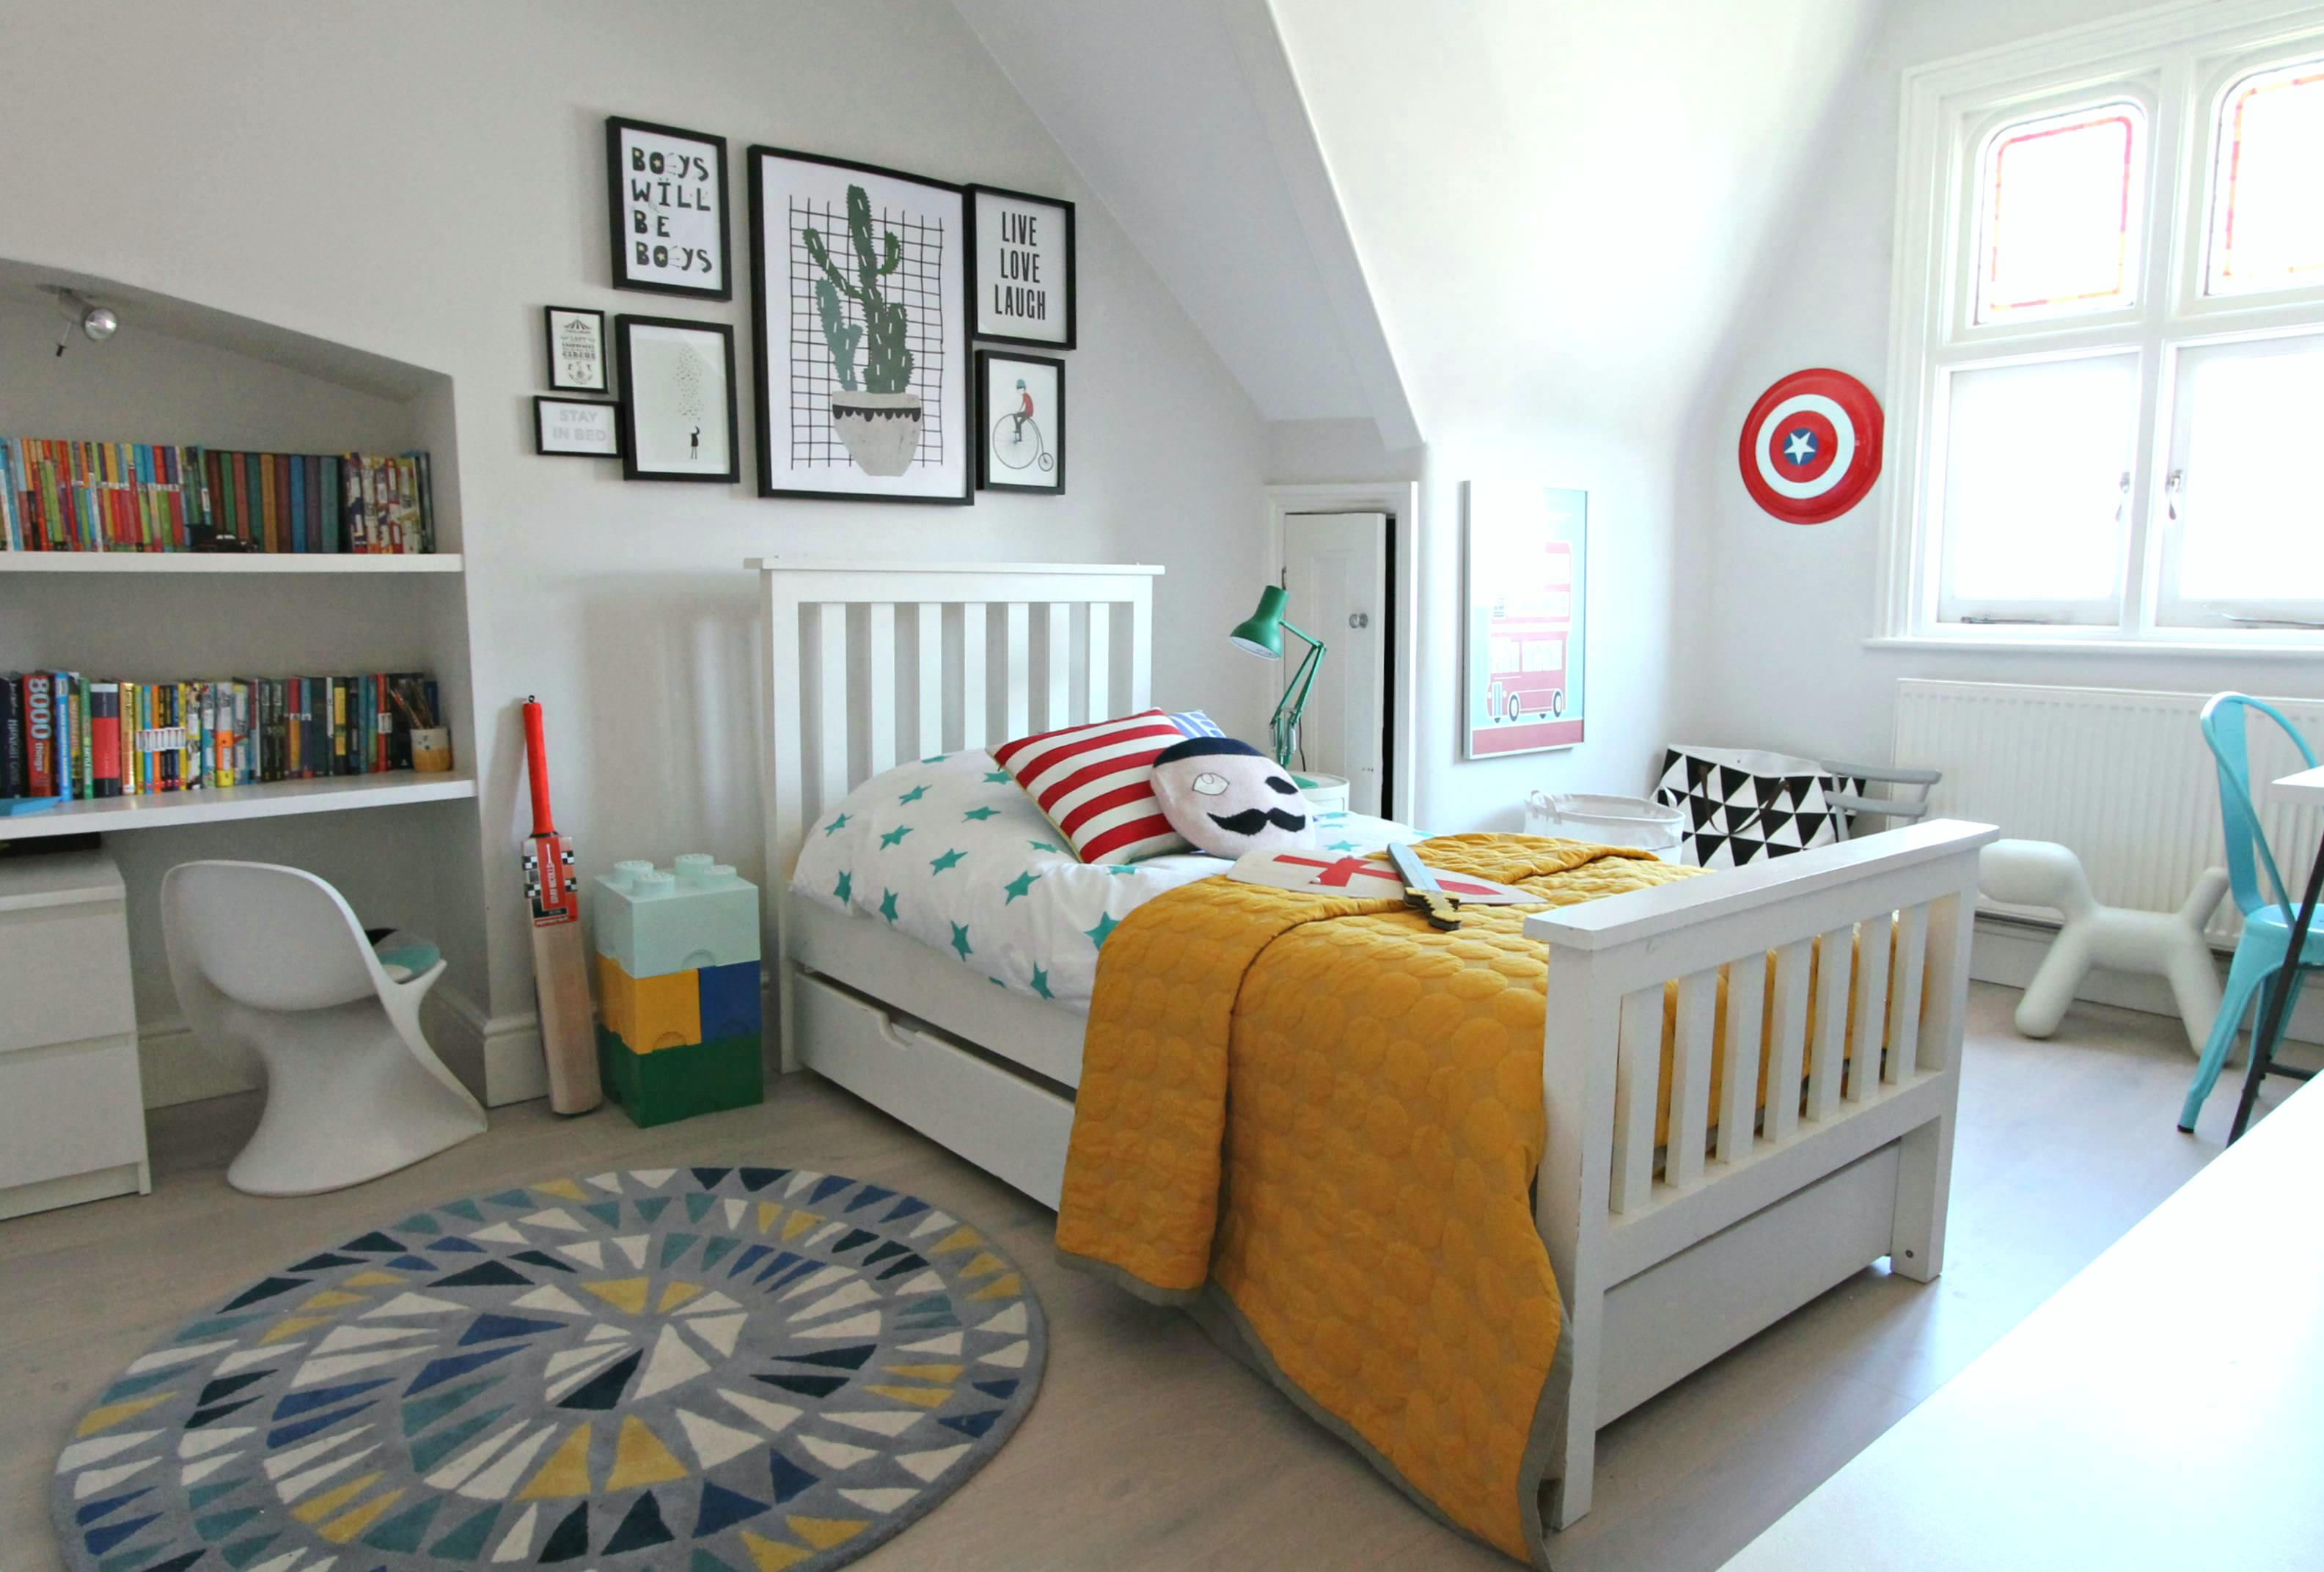 Decluttering and kidsu0027 room storage. Stylish ways to hide toys away. & littleBIGBELL Decluttering and kidsu0027 room storage. Stylish ways to ...